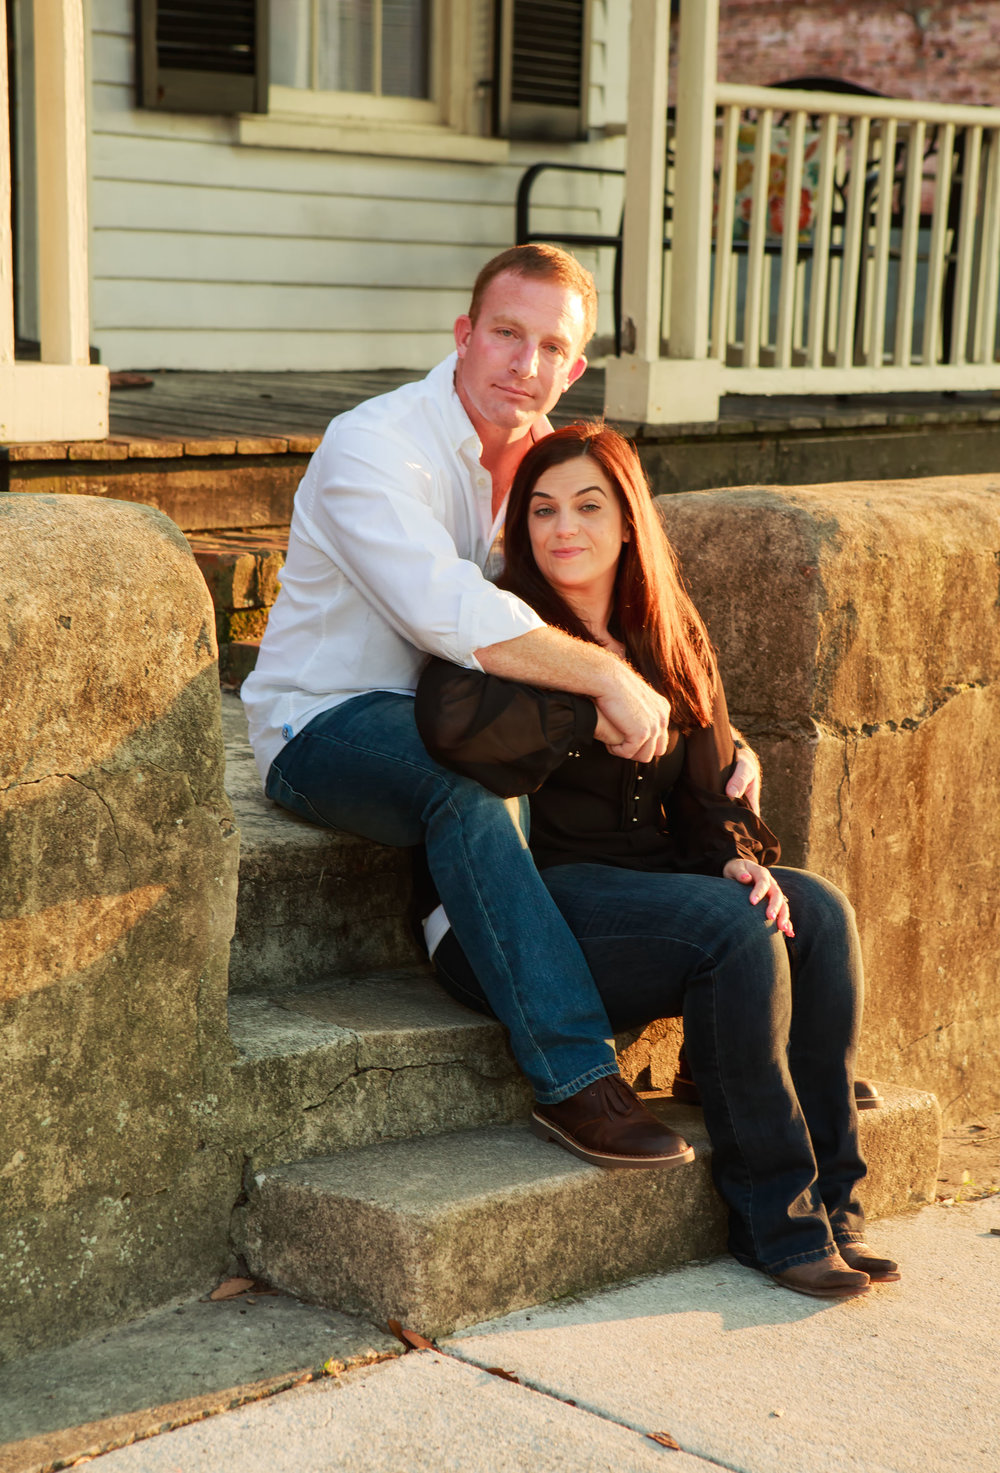 Wilmington_NC_Photographer_Tiffany_Abruzzo_Photography_Engagement_28.jpg